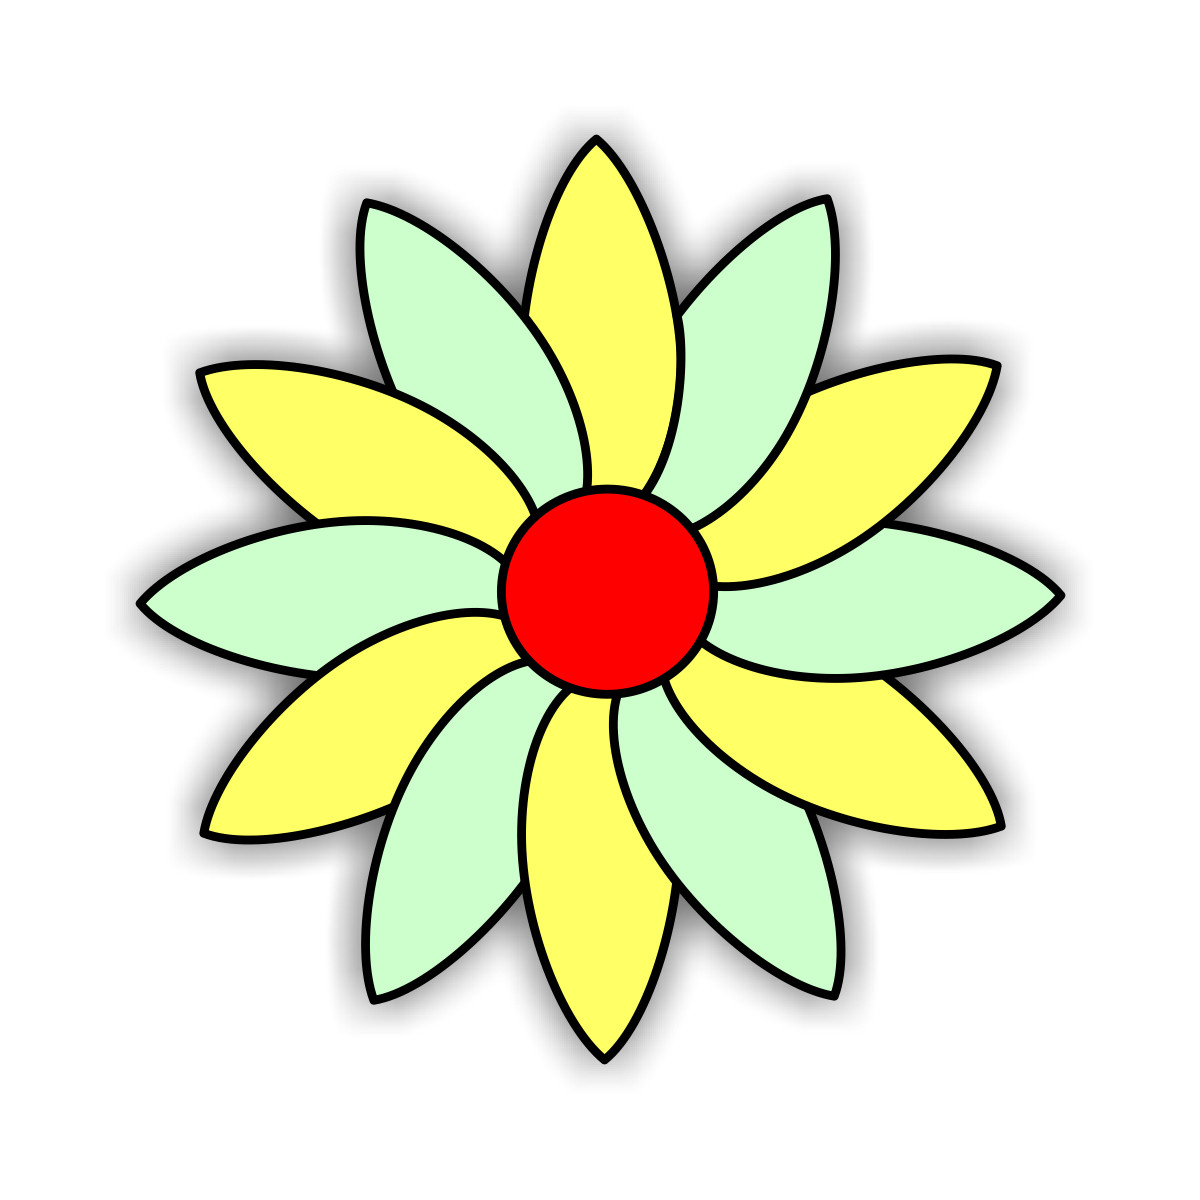 blkomblumen clipart 20 free cliparts  download images on